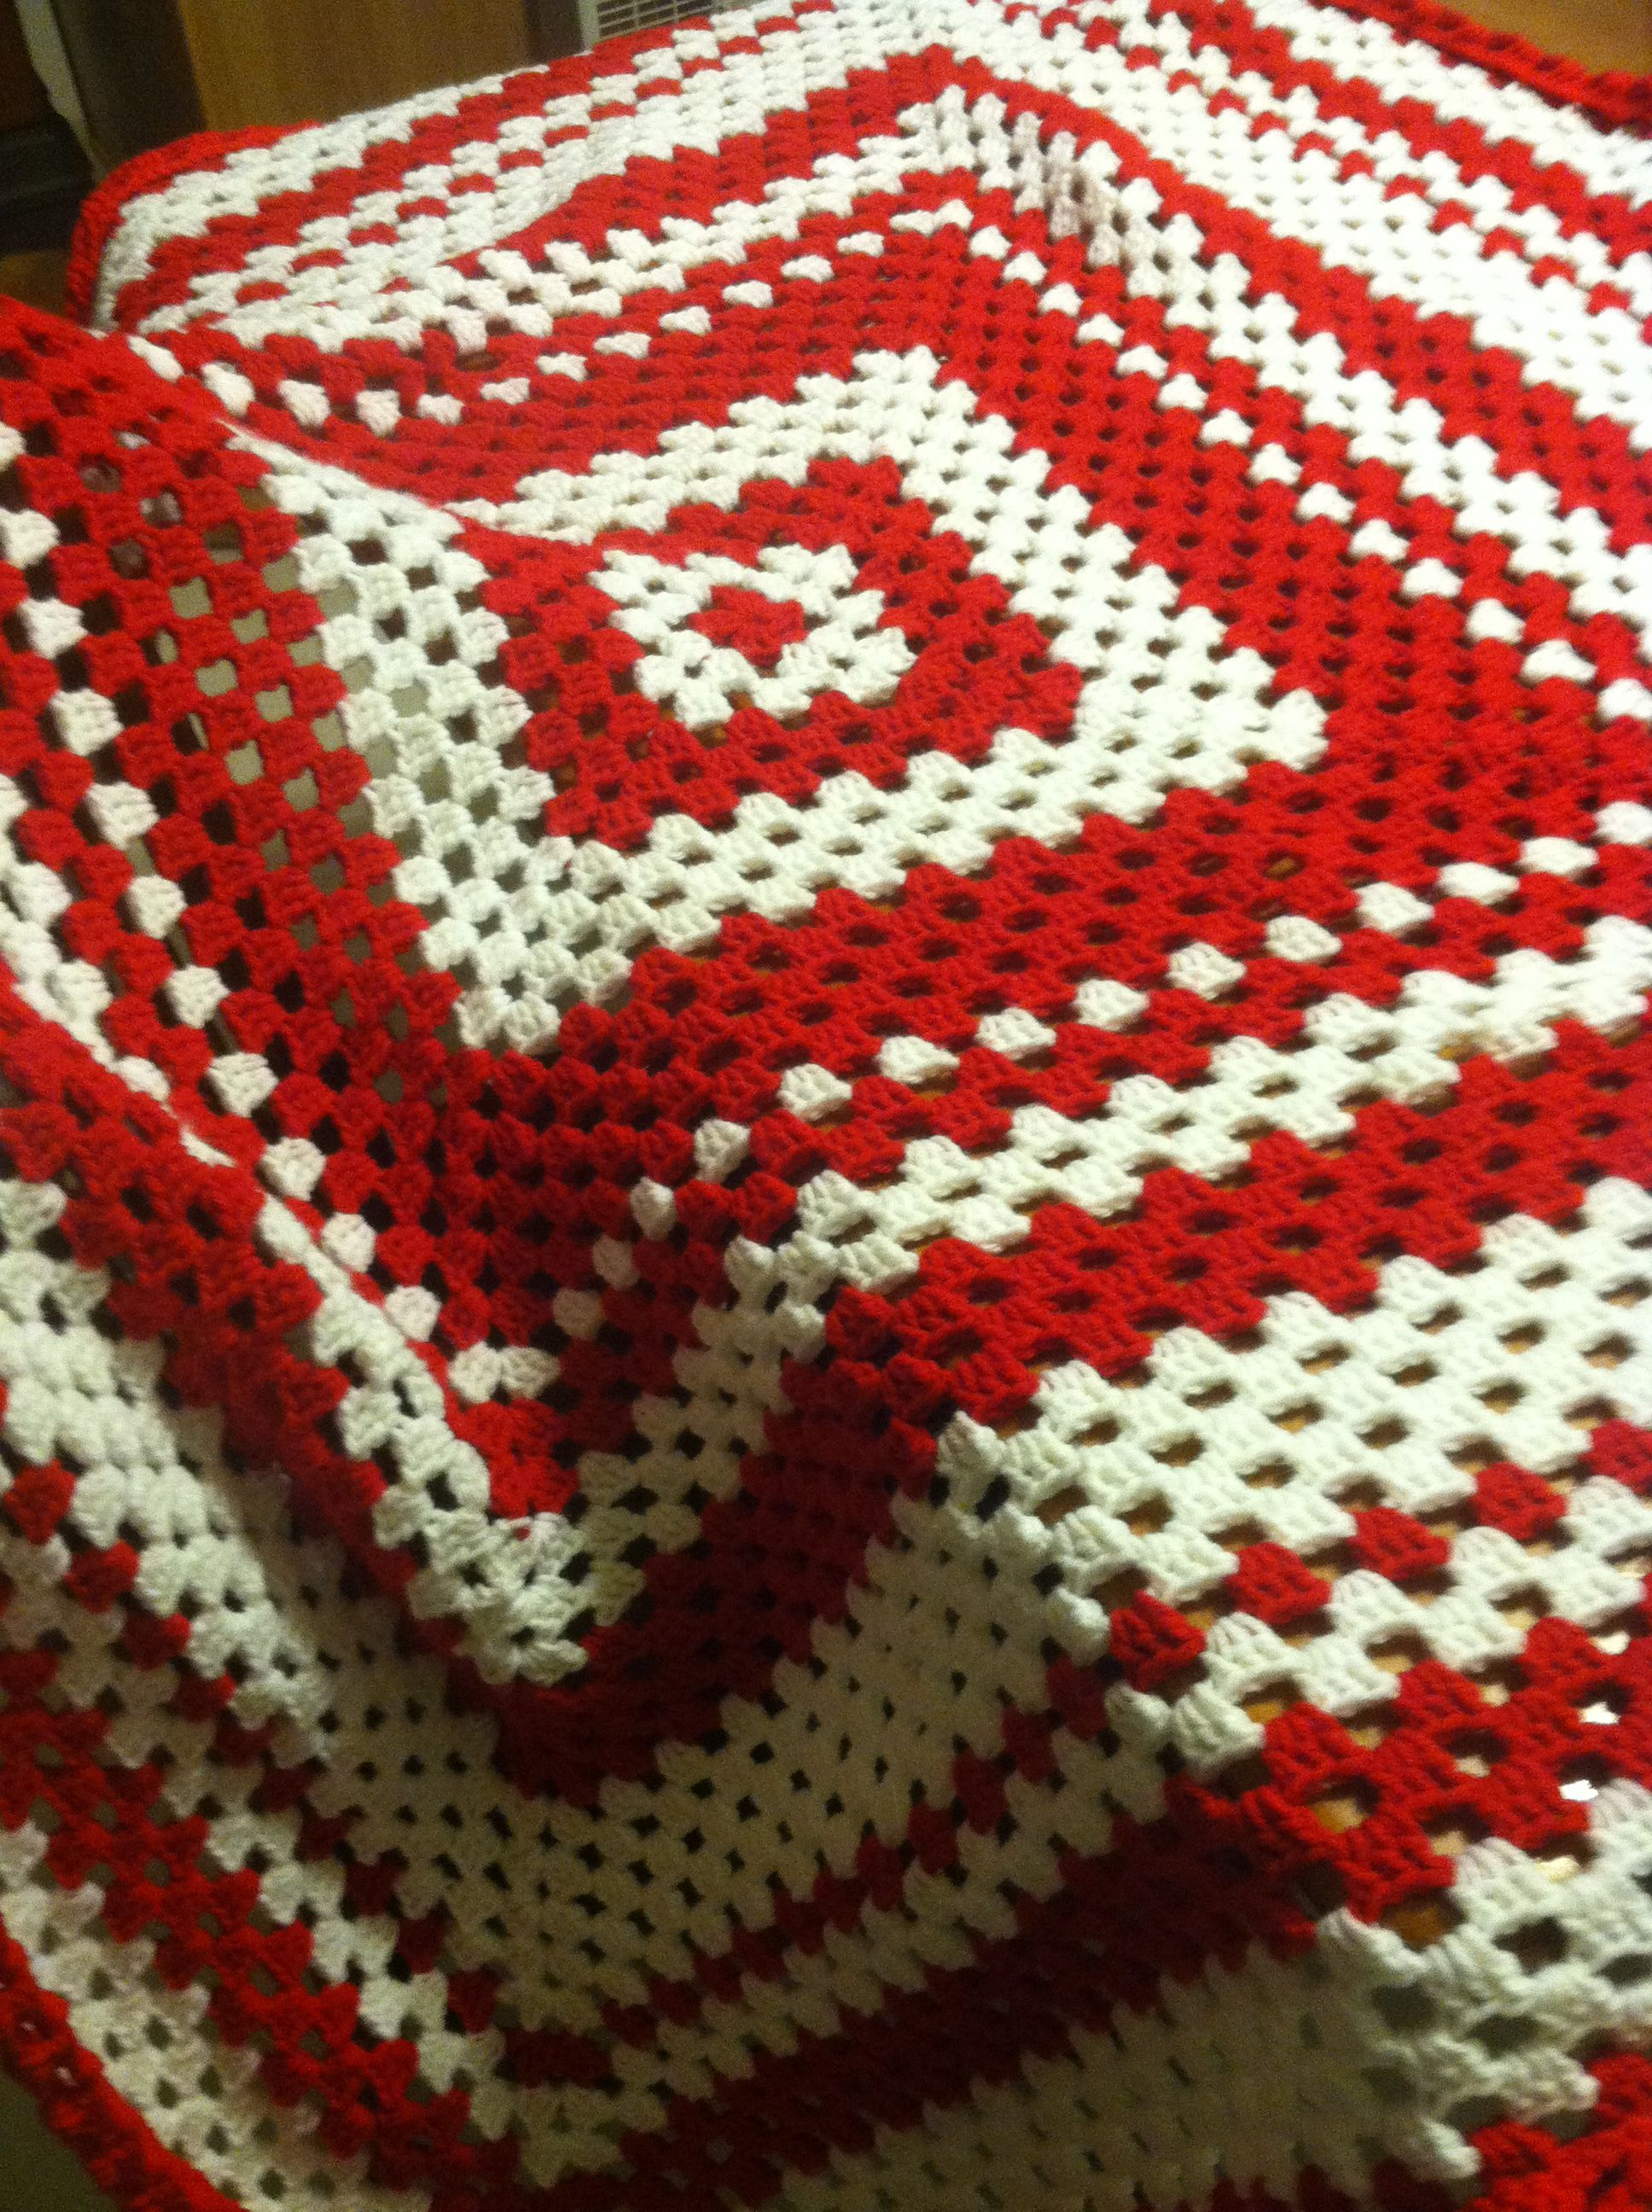 Red Wings colors giant granny square blanket.  I started with a basic granny square, then just kept adding rounds until it was about 6 feet long/across.